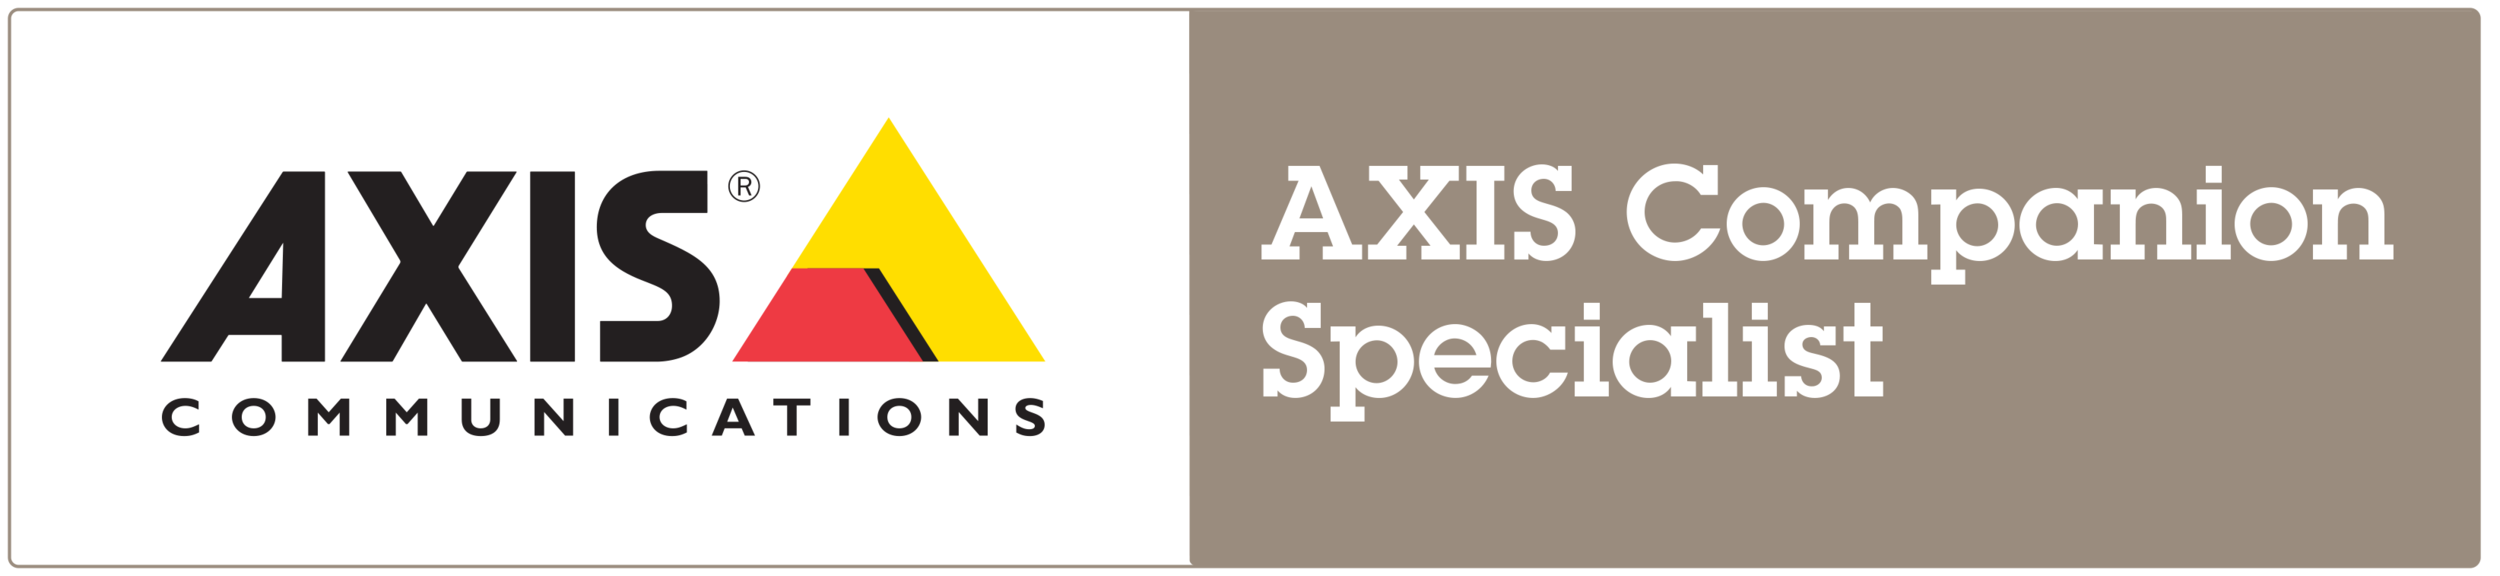 axis_companion_specialist_1606_logo.png